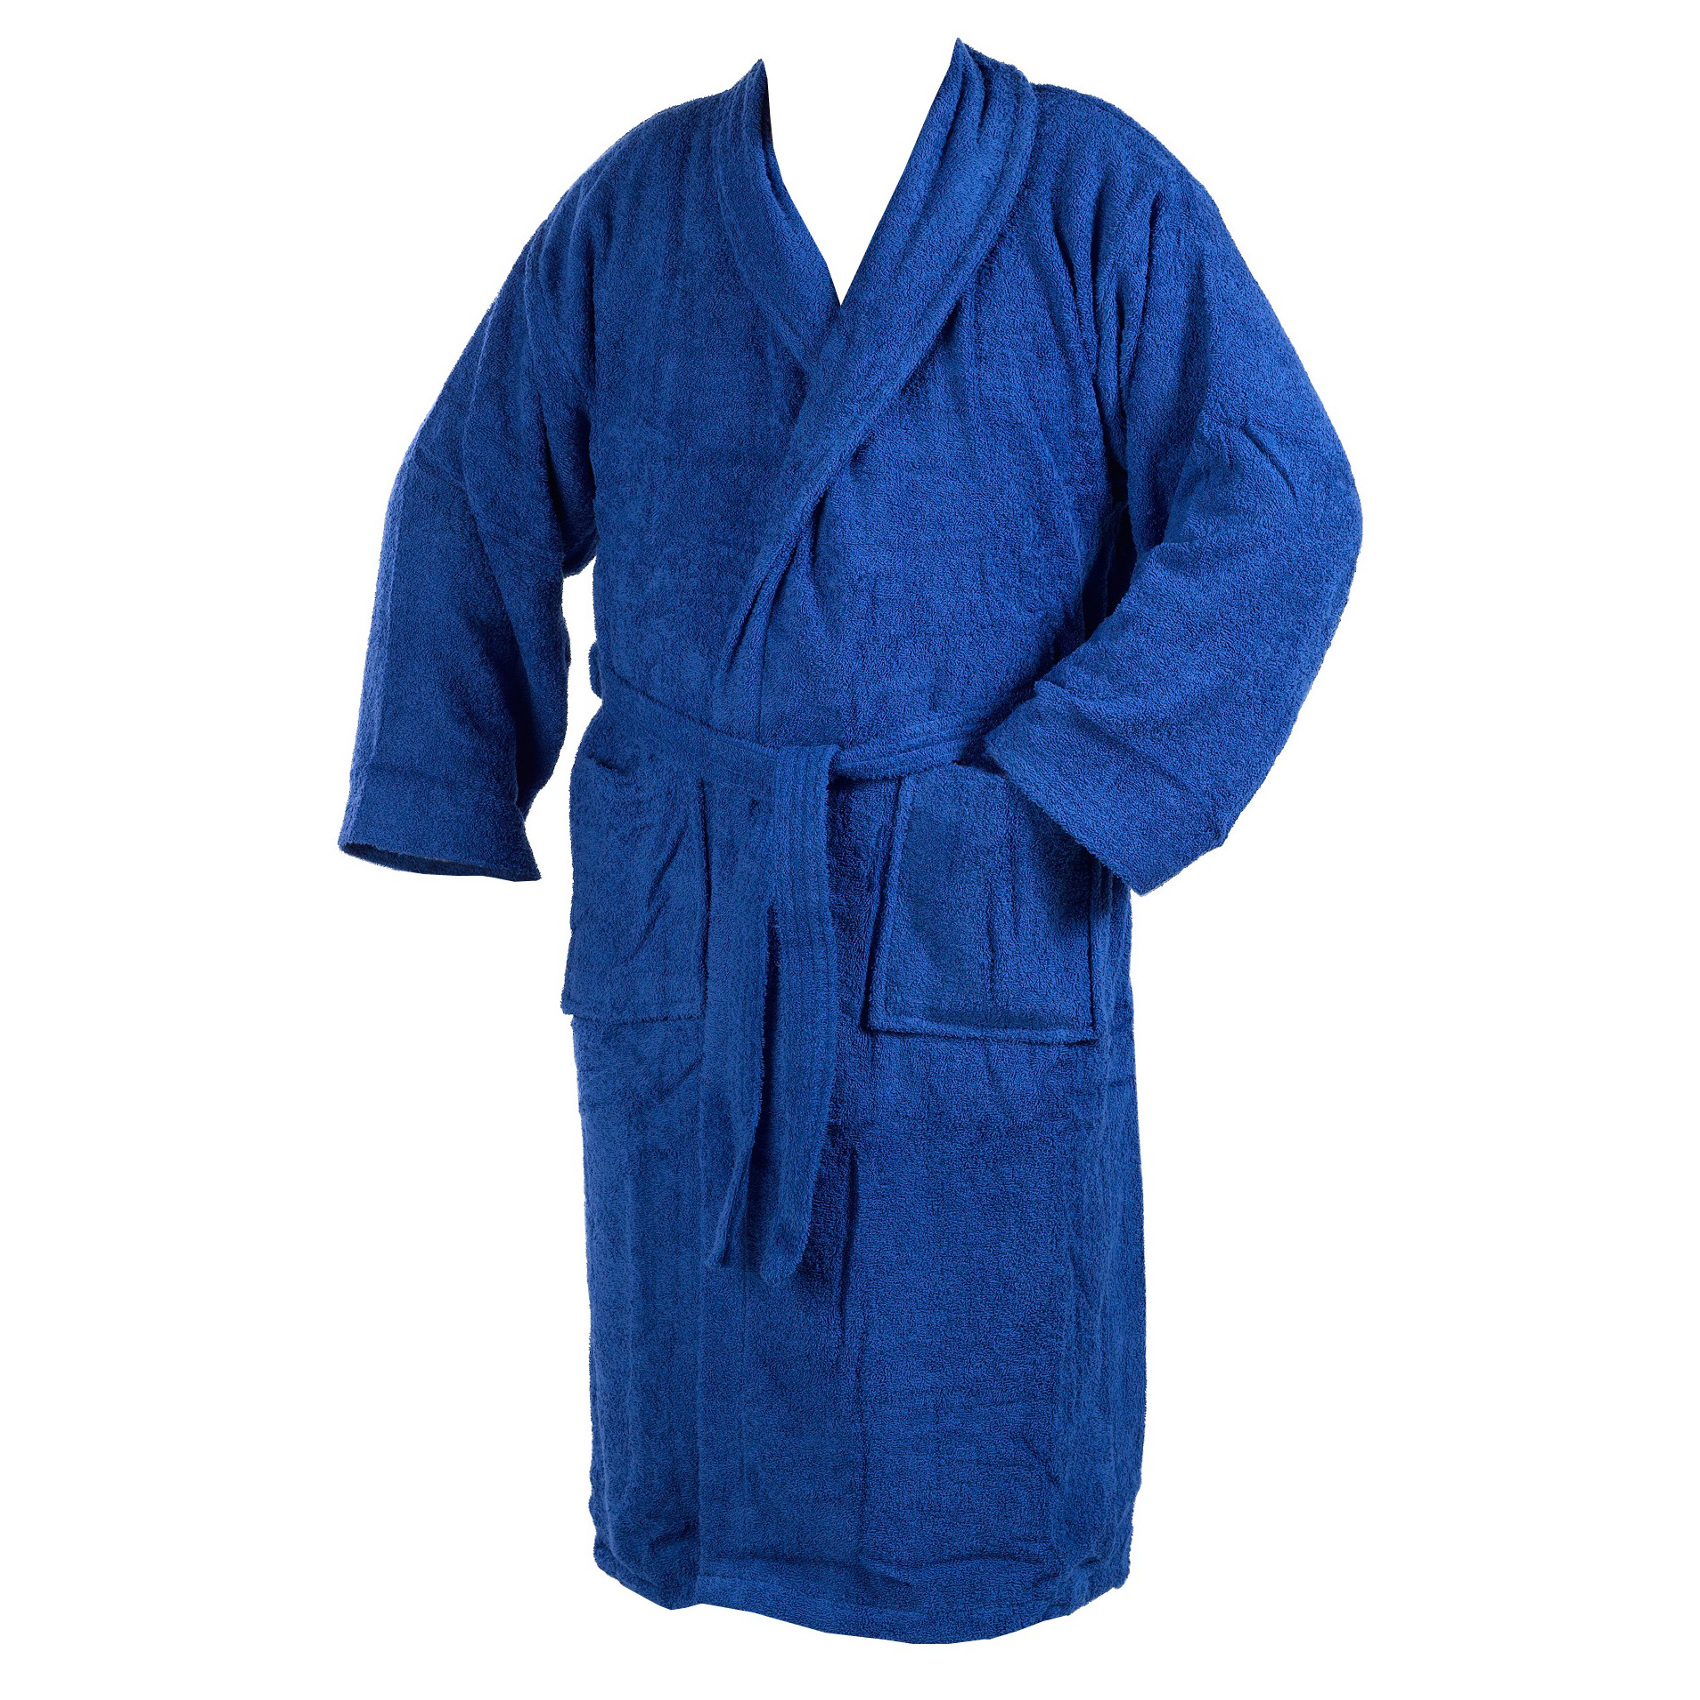 Cotton On Dressing Gown Soft Terry Towelling Bath Robe 100 Cotton Wrap Around